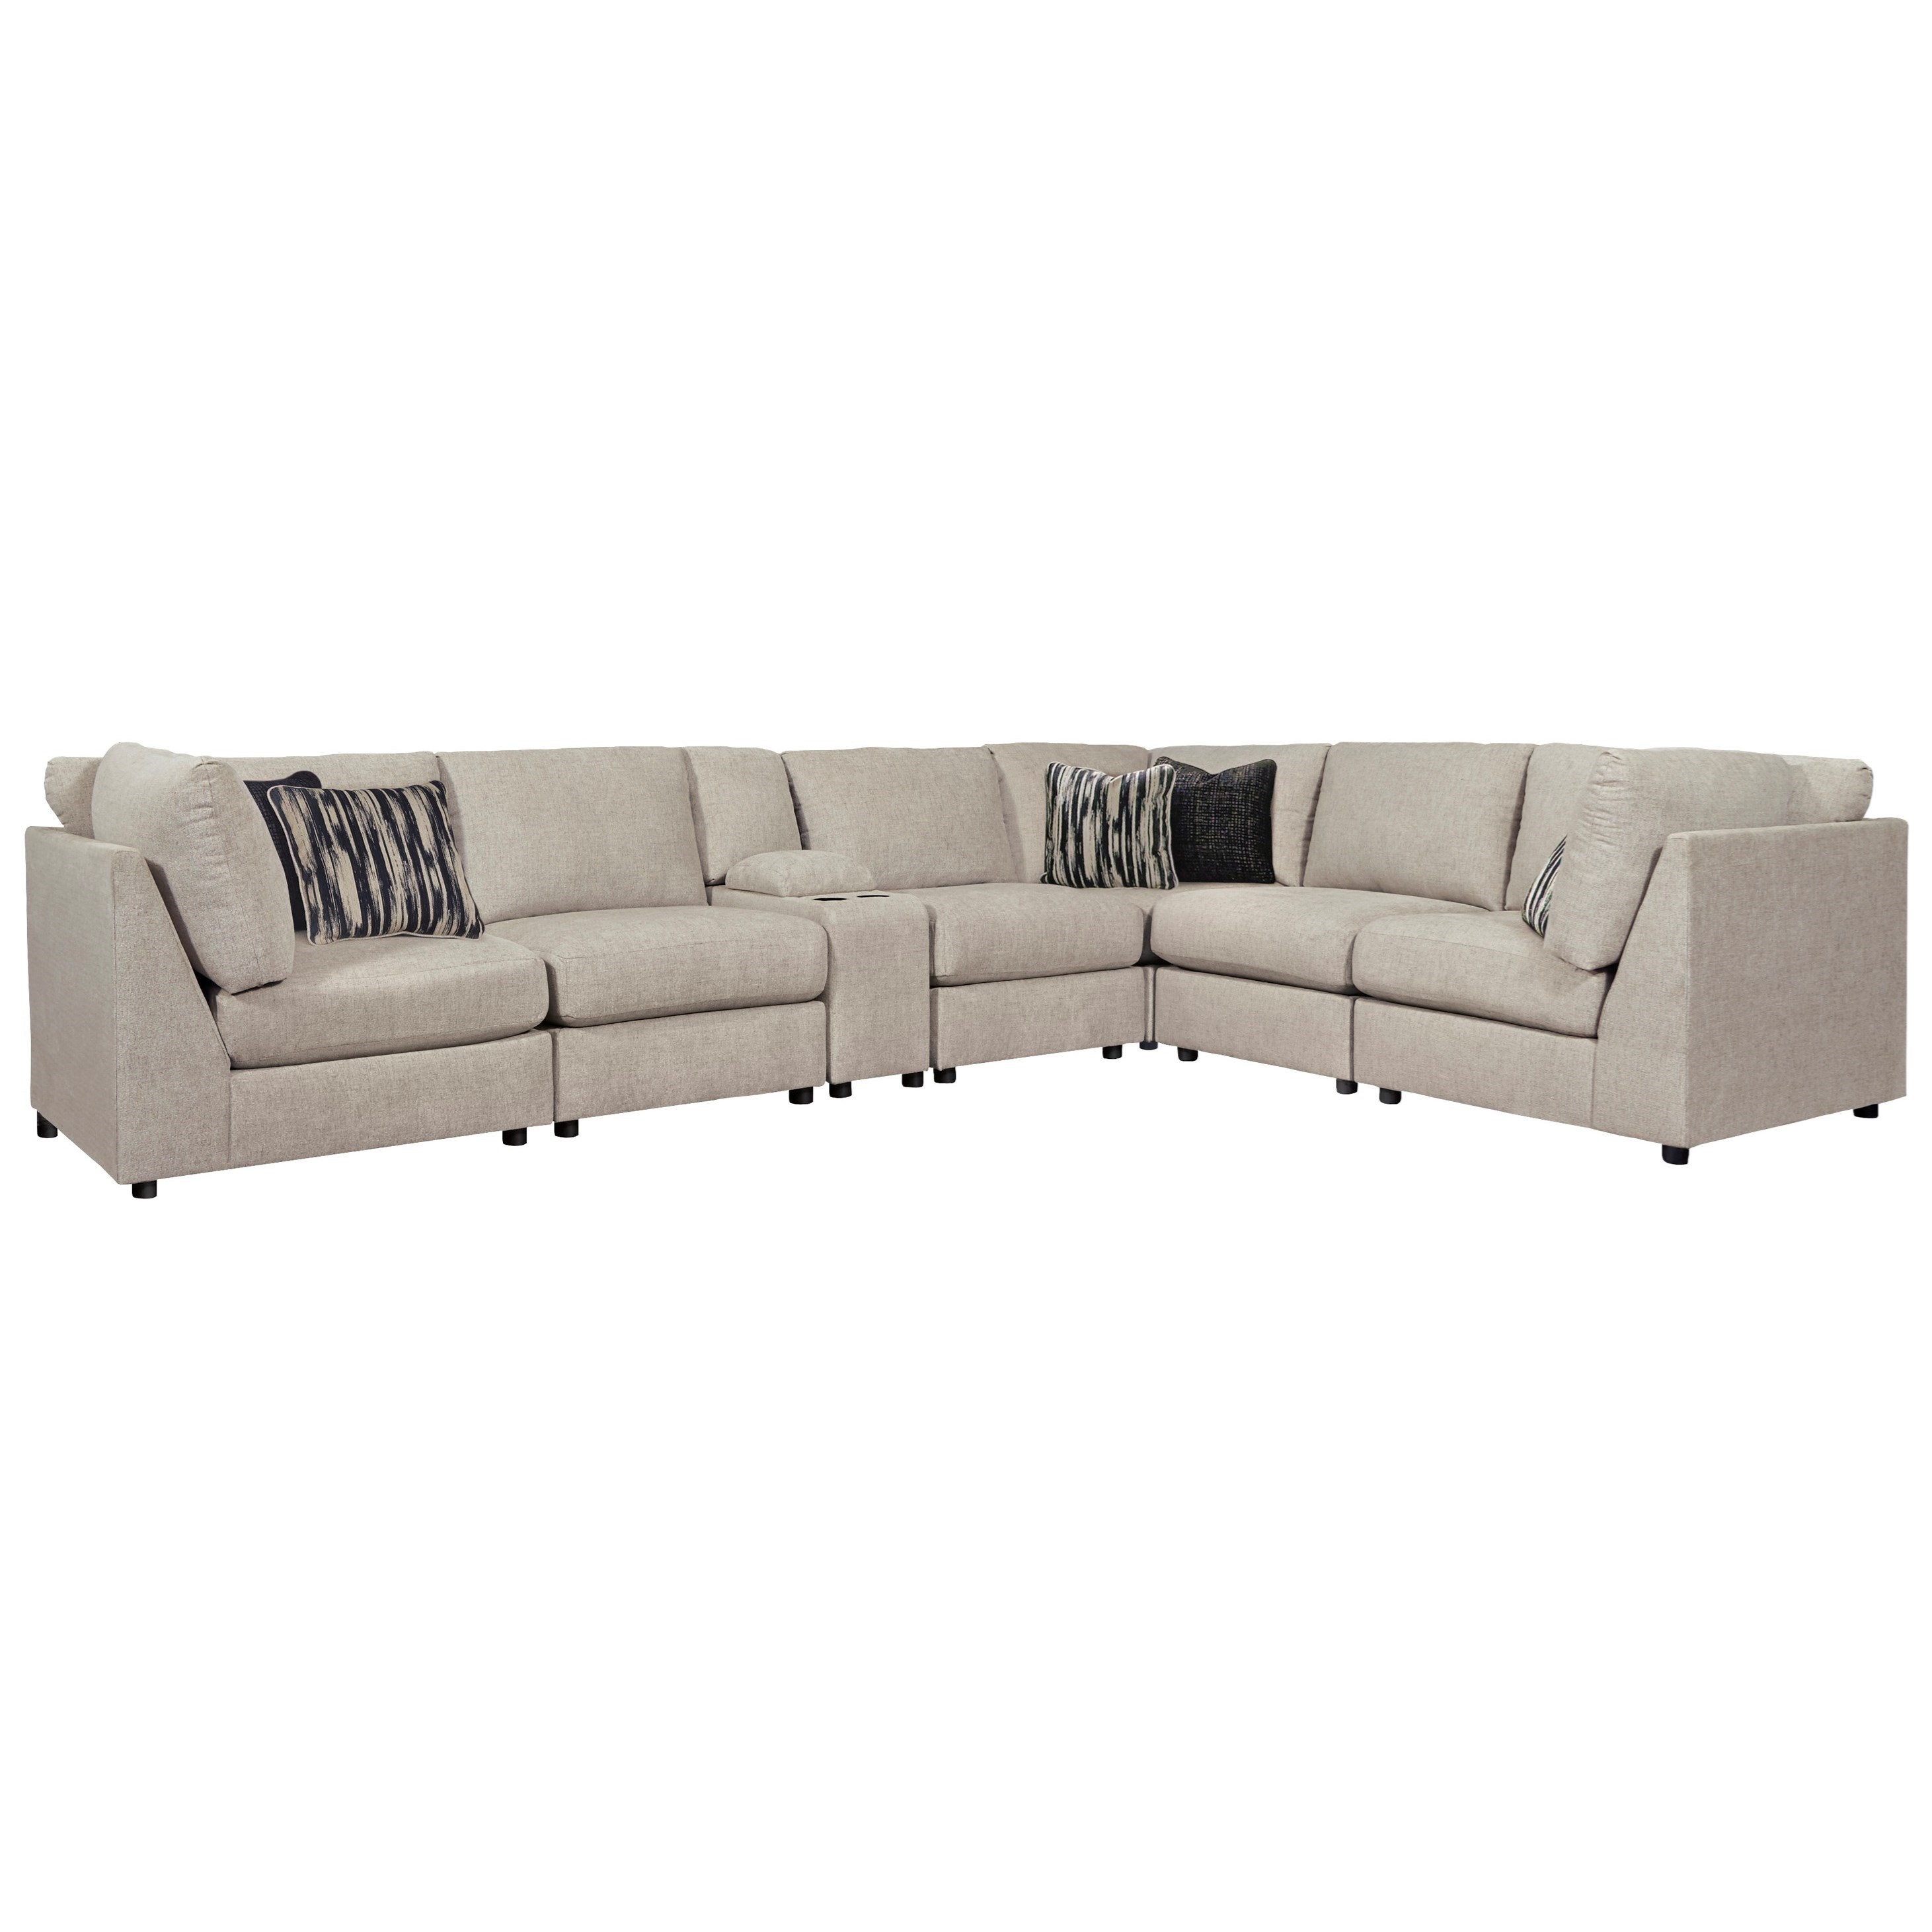 Kellway 7-Piece Sectional by Signature at Walker's Furniture